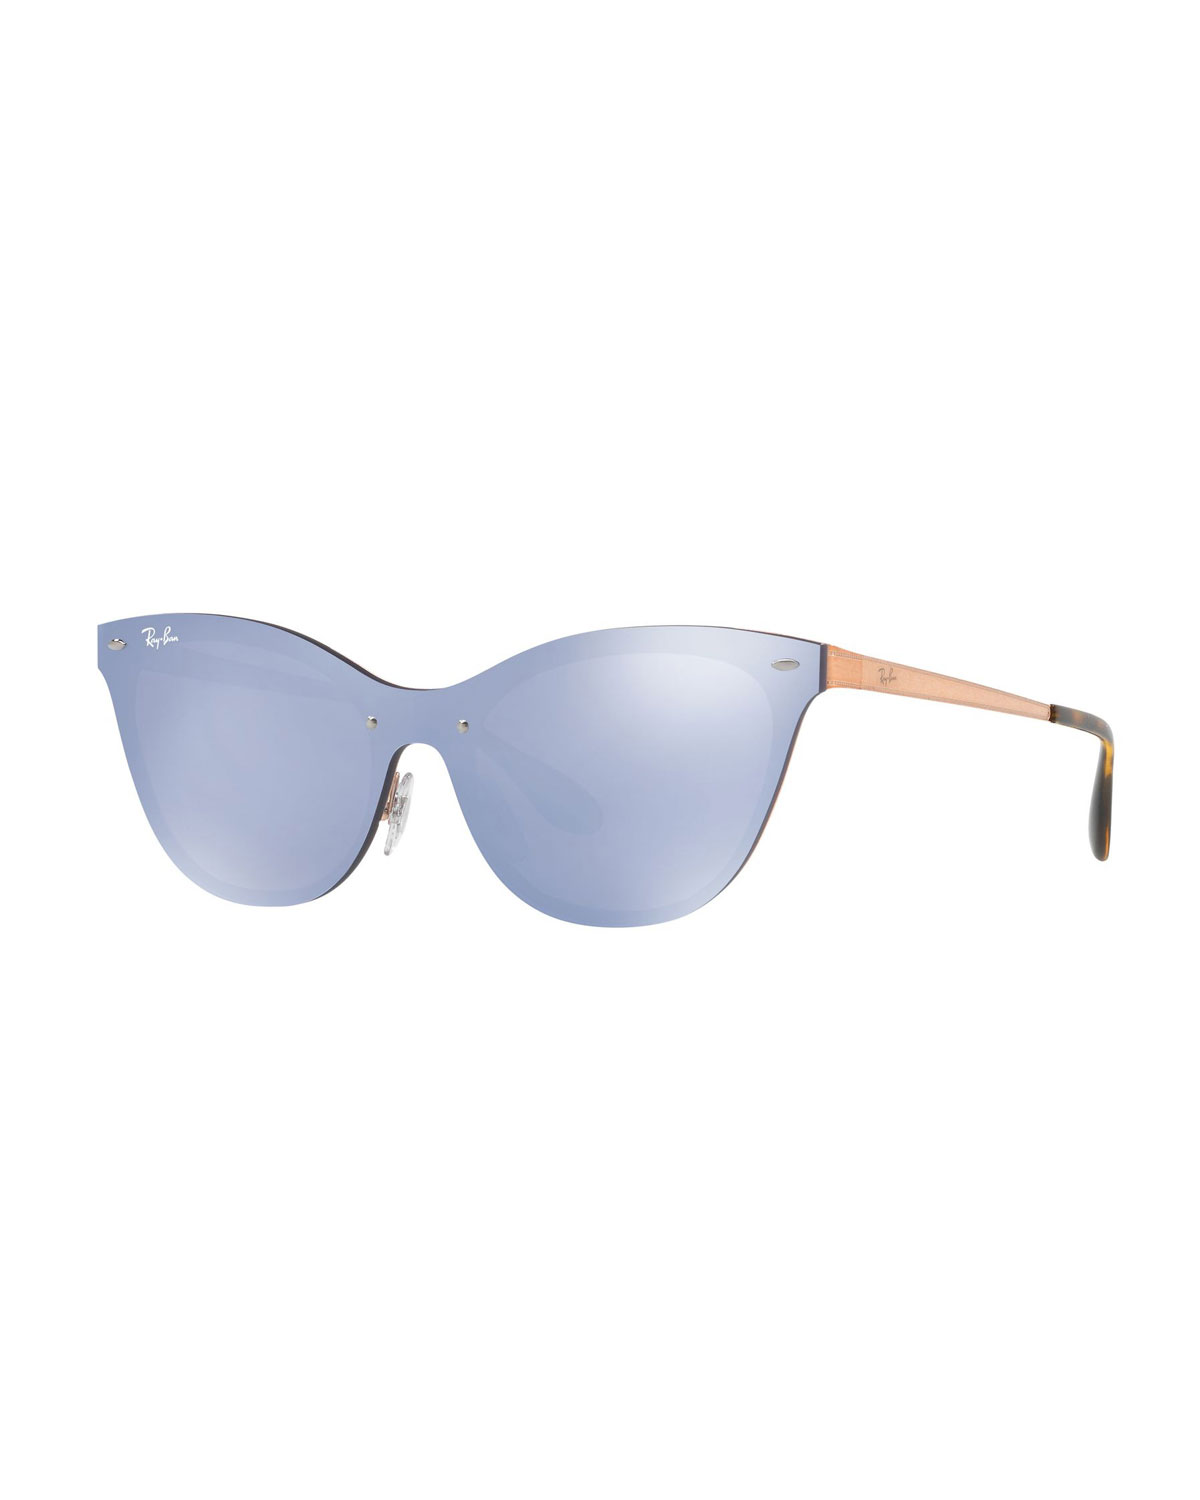 11cbcf00c9 Ray-Ban Mirrored Shield Cat-Eye Sunglasses